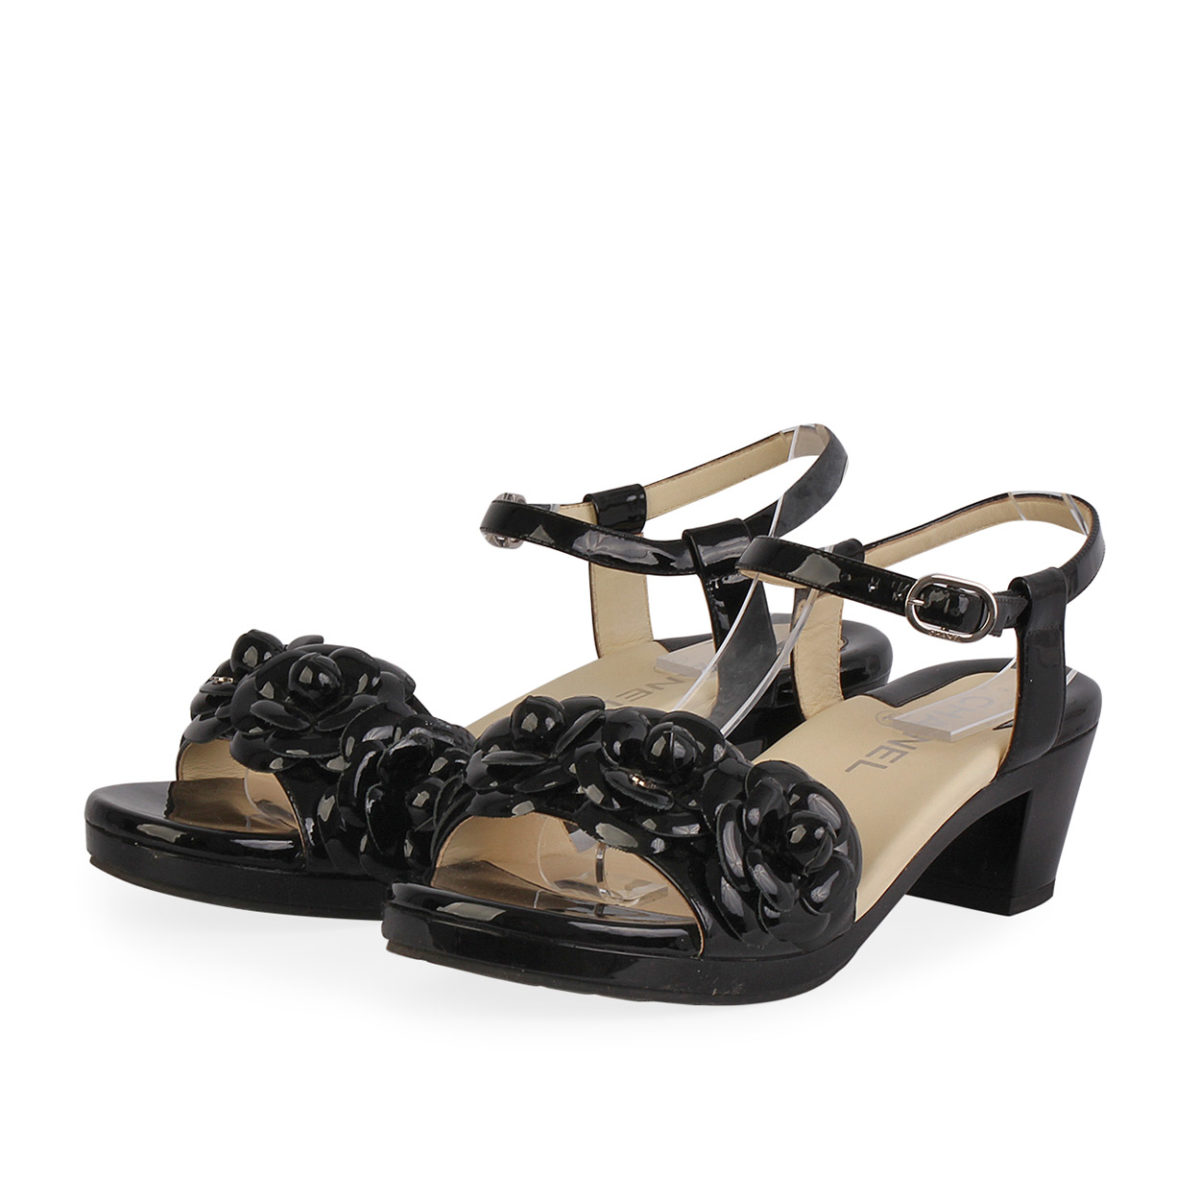 770b23b09be CHANEL Patent Leather Camellia Flowers Sandals Black - S  37.5 (4.5 ...